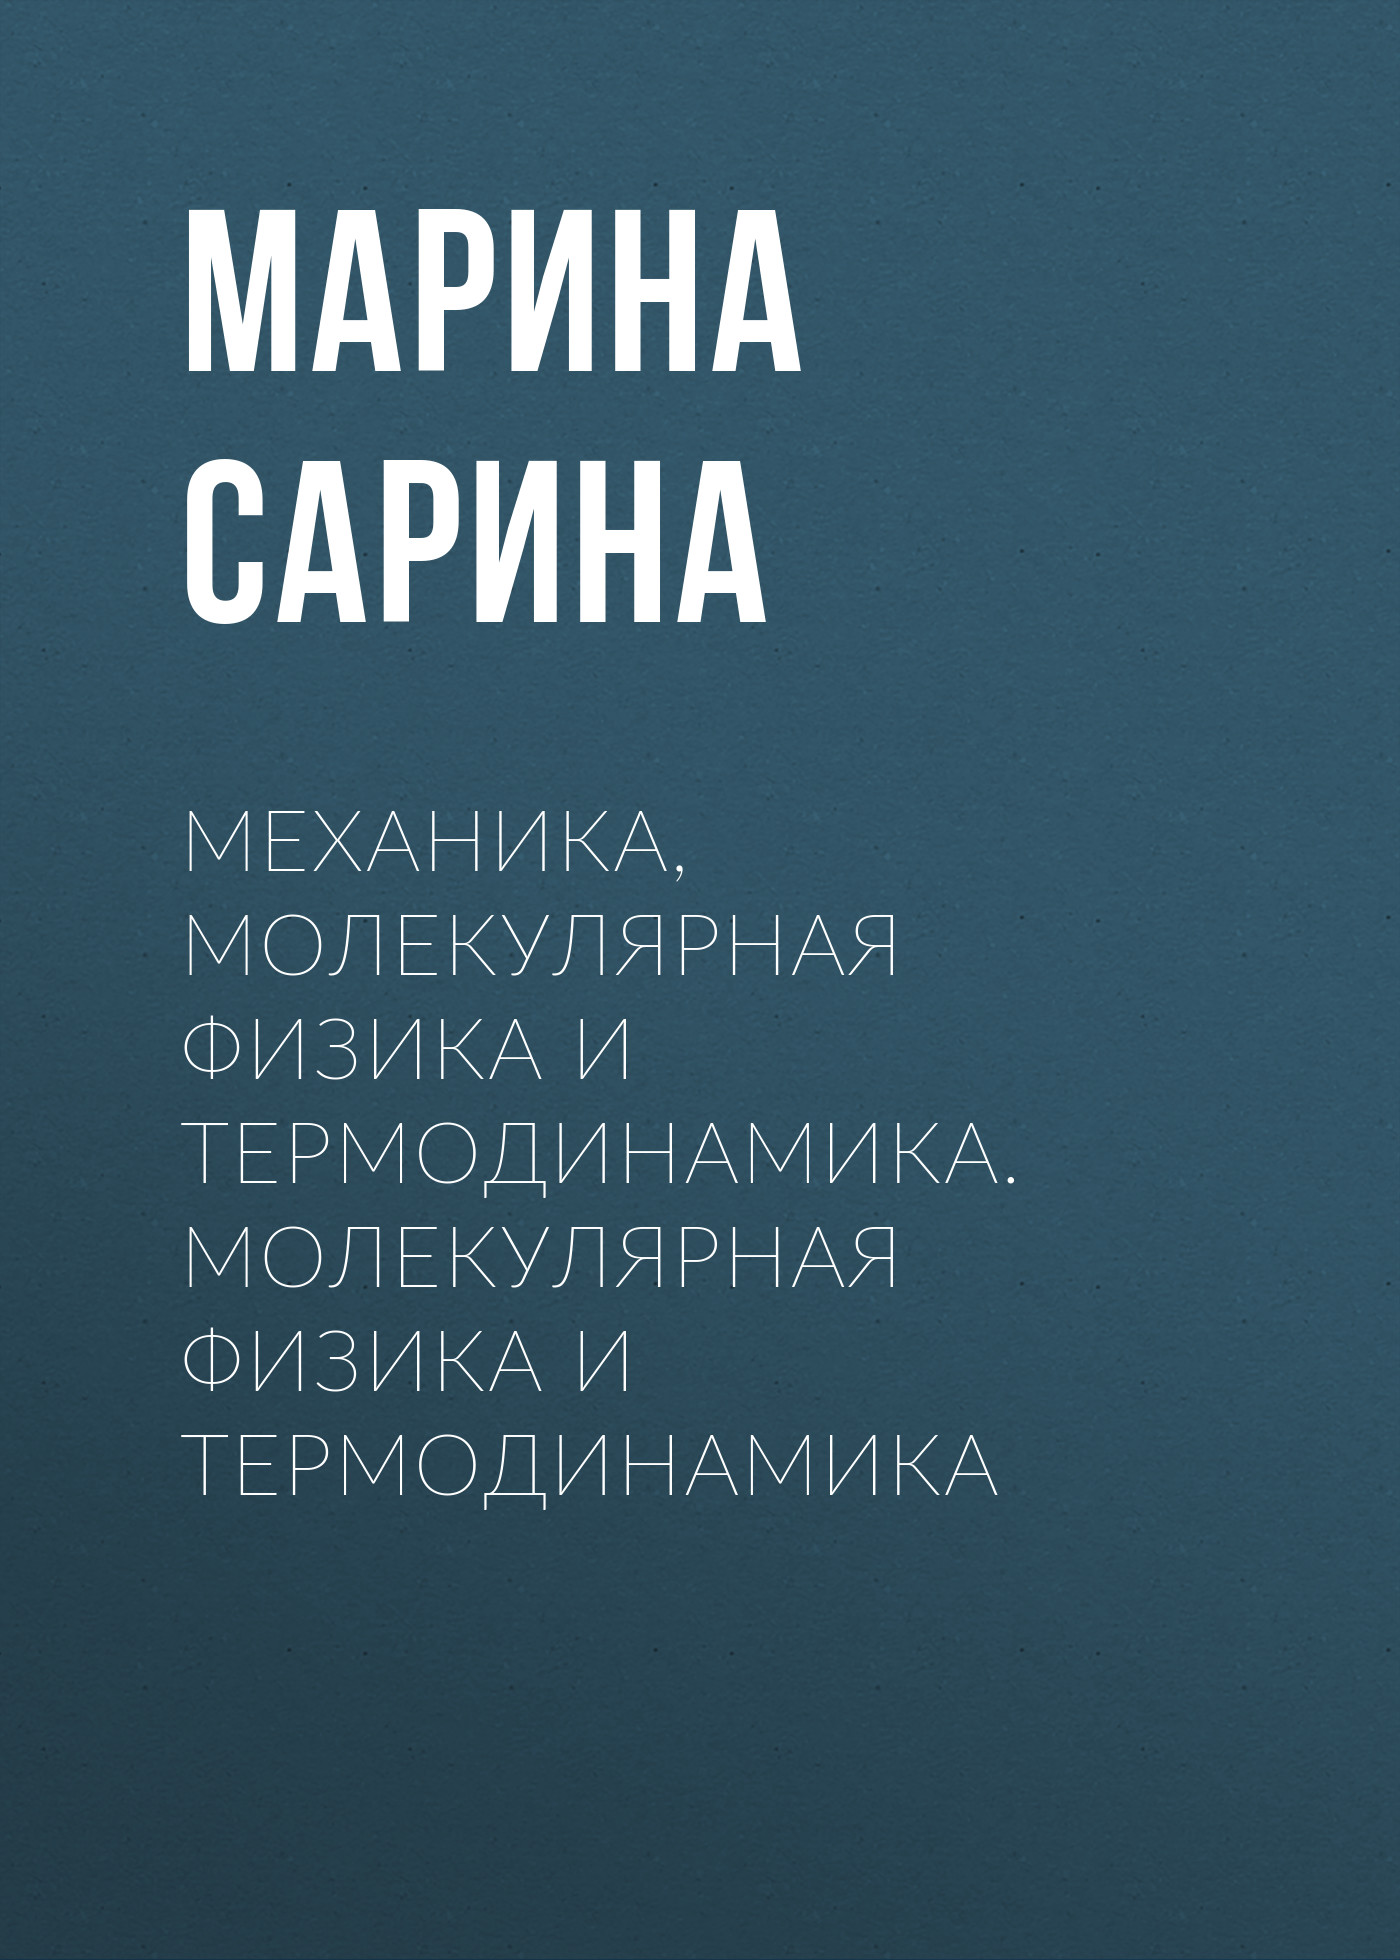 Марина Сарина Механика, молекулярная физика и термодинамика. Молекулярная физика и термодинамика dc48v 500w 10 4a switching power supply 115v 230v to stepper motor diy cnc router